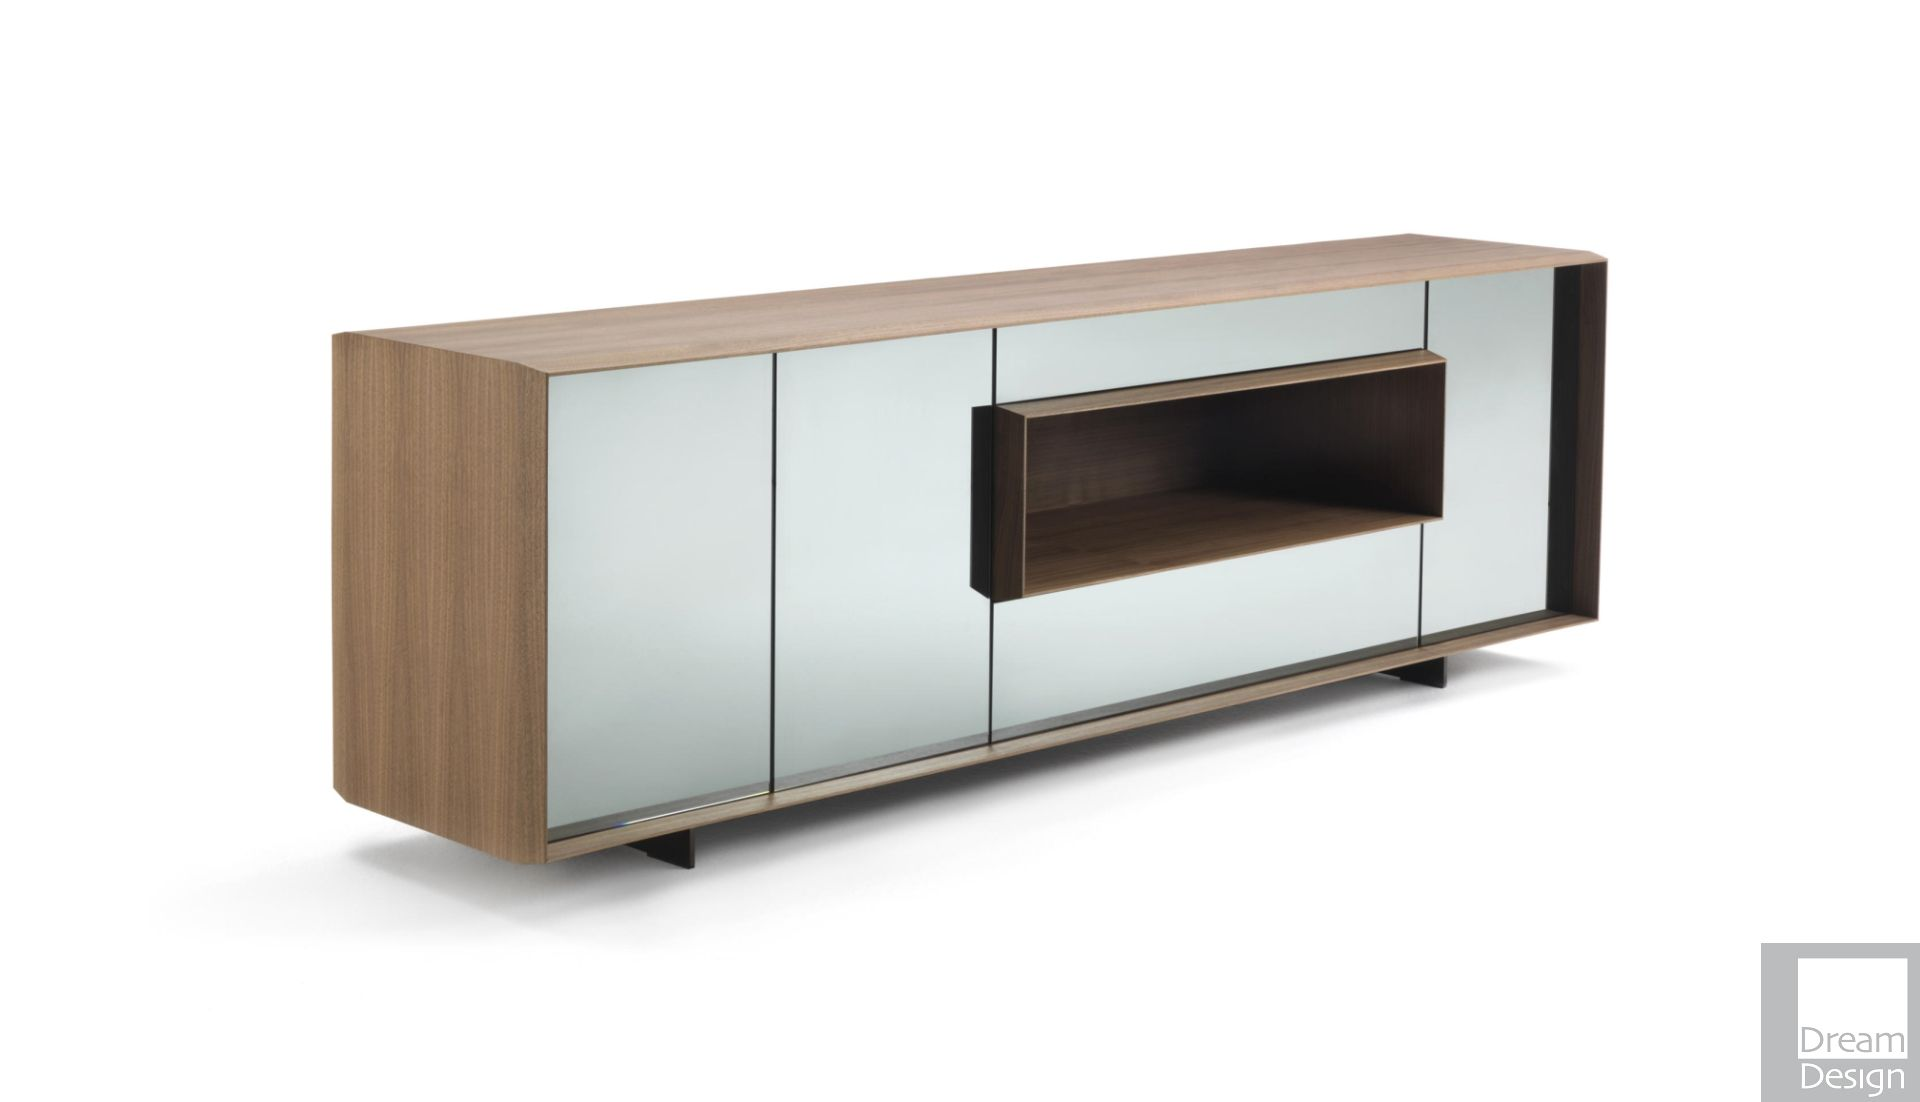 Porada sonja 240 sideboard by g garollo everything but for Sideboard 240